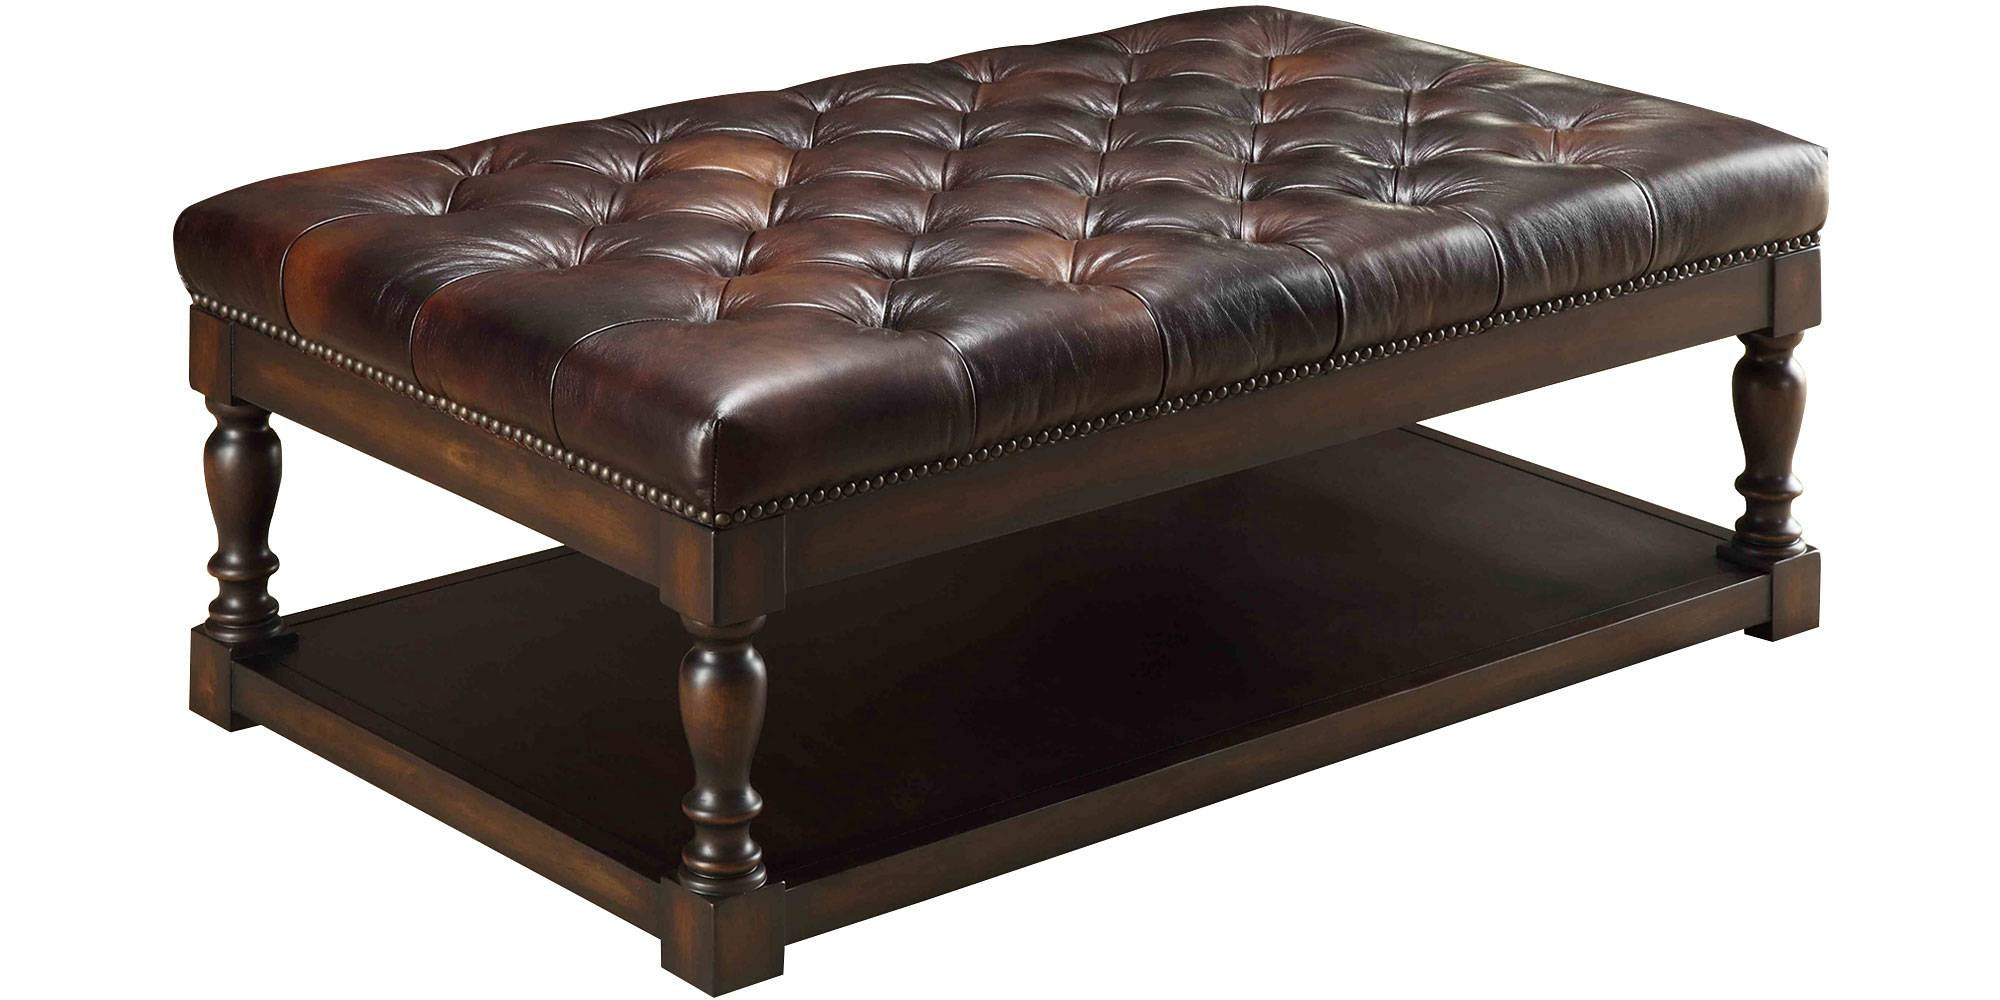 Coffee Table: Stunning Round Leather Ottoman Coffee Table Design regarding Brown Leather Ottoman Coffee Tables (Image 16 of 30)